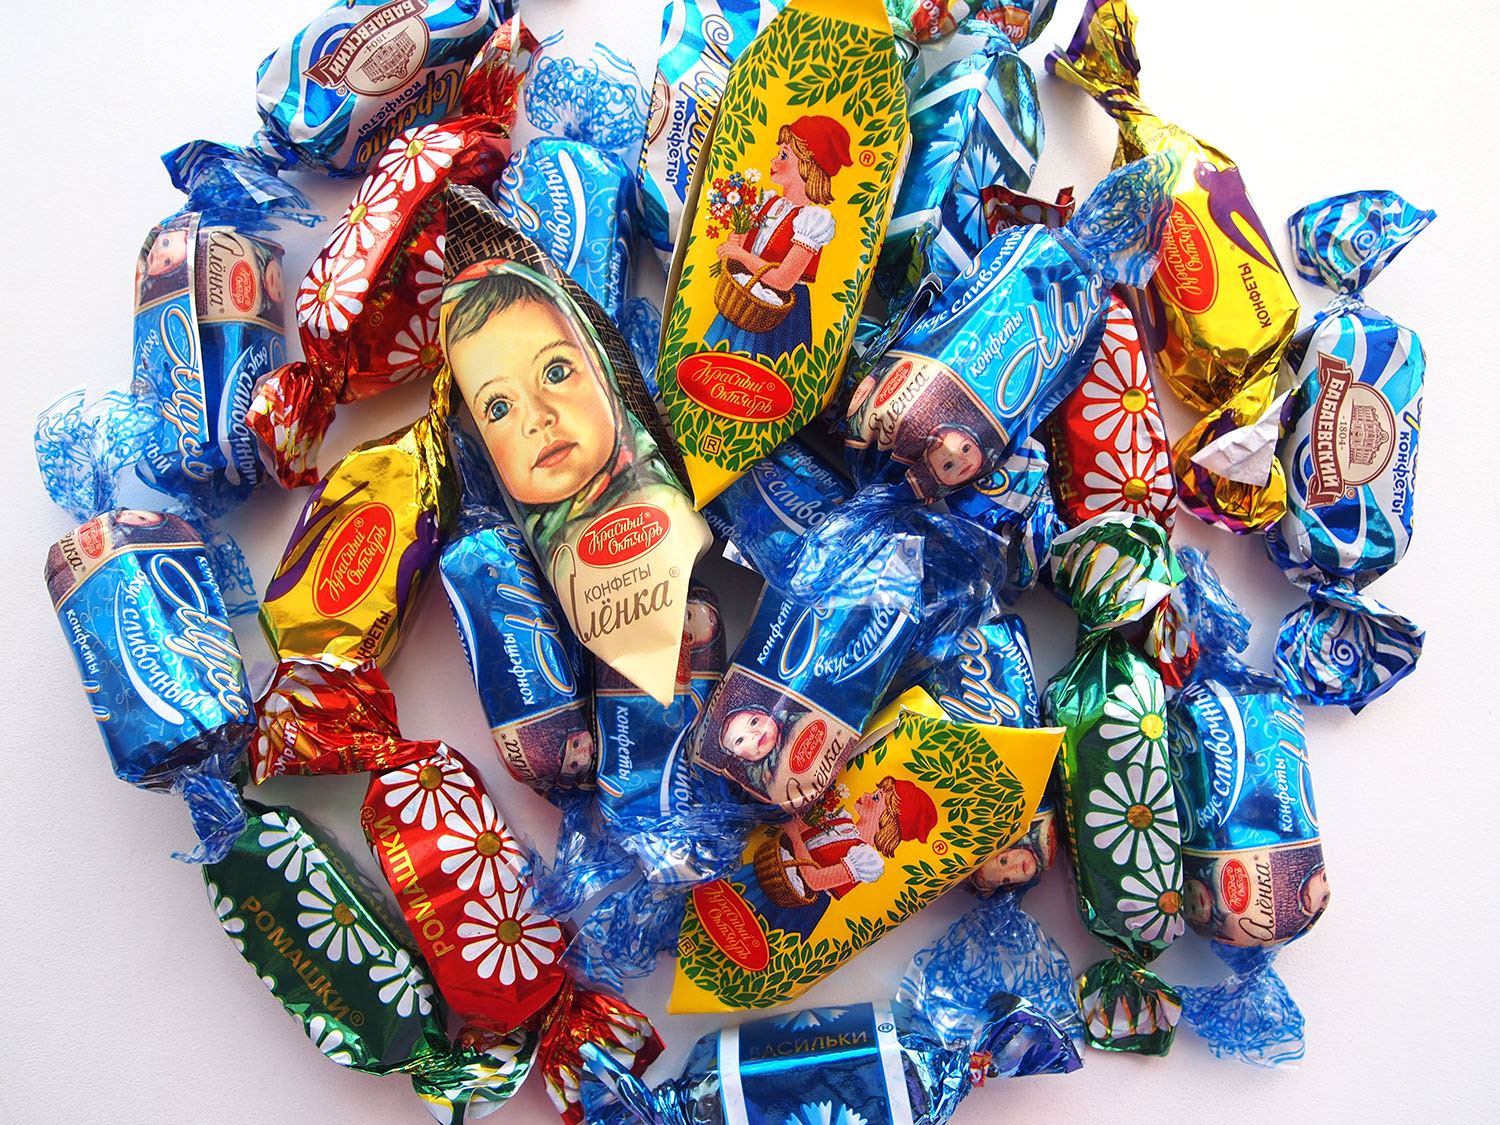 Russian-Candy-Assortment.jpg